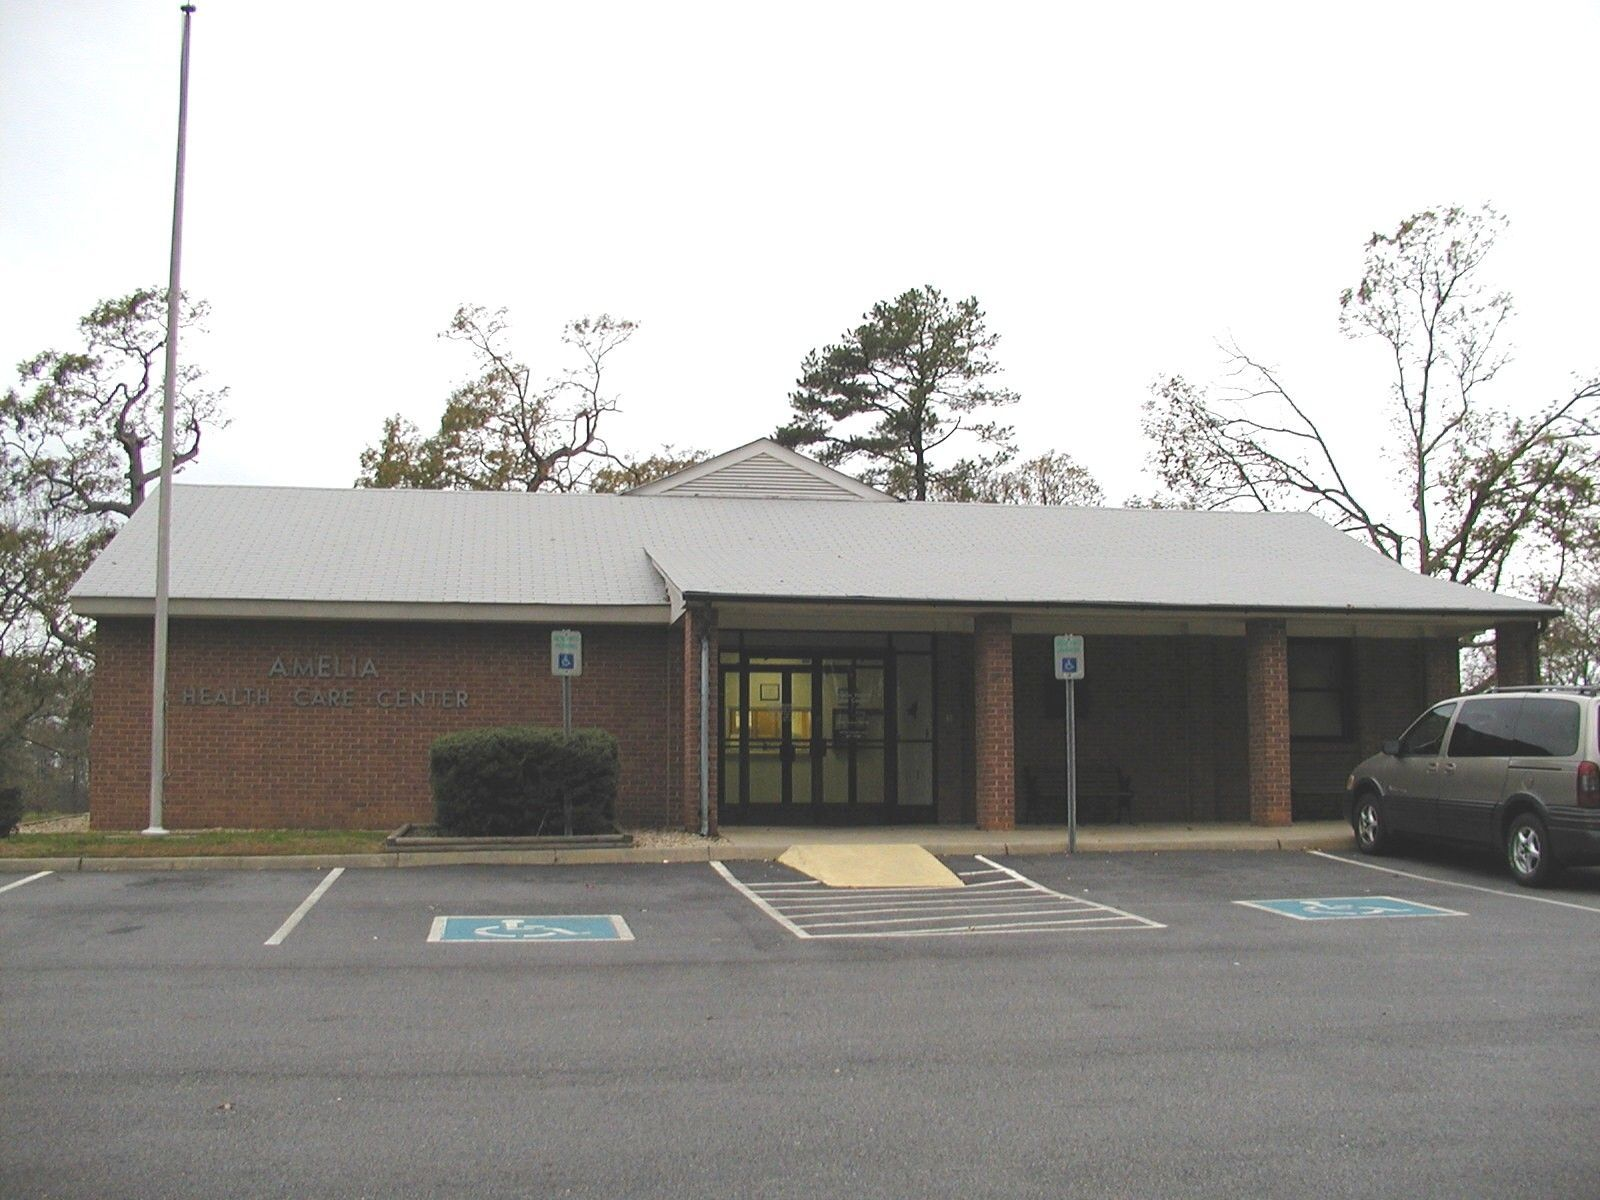 Amelia Healthcare Center